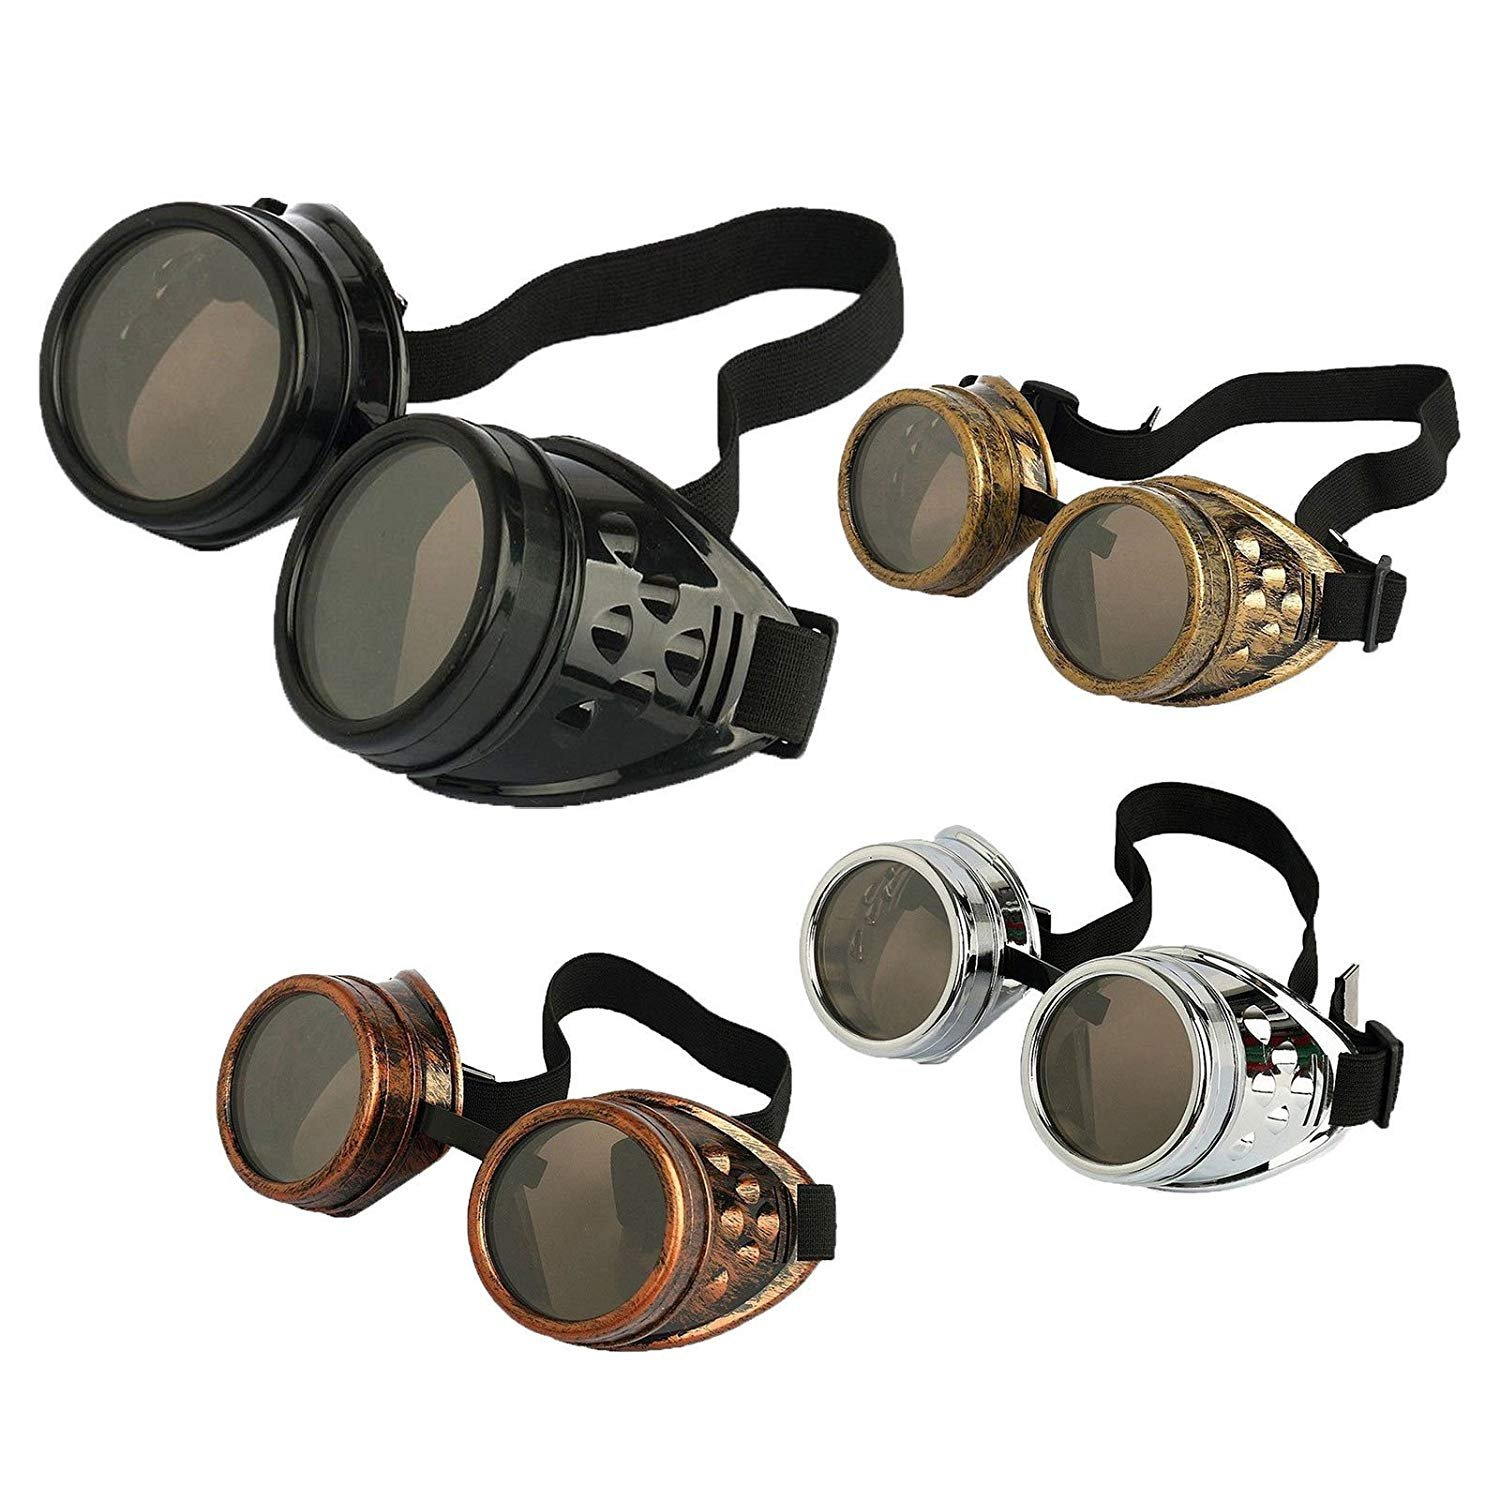 c4677d32e21a3 Galleon - NYKKOLA 4pcs Retro Vintage Victorian Steampunk Goggles Glasses  Welding Cyber Punk Gothic Cosplay